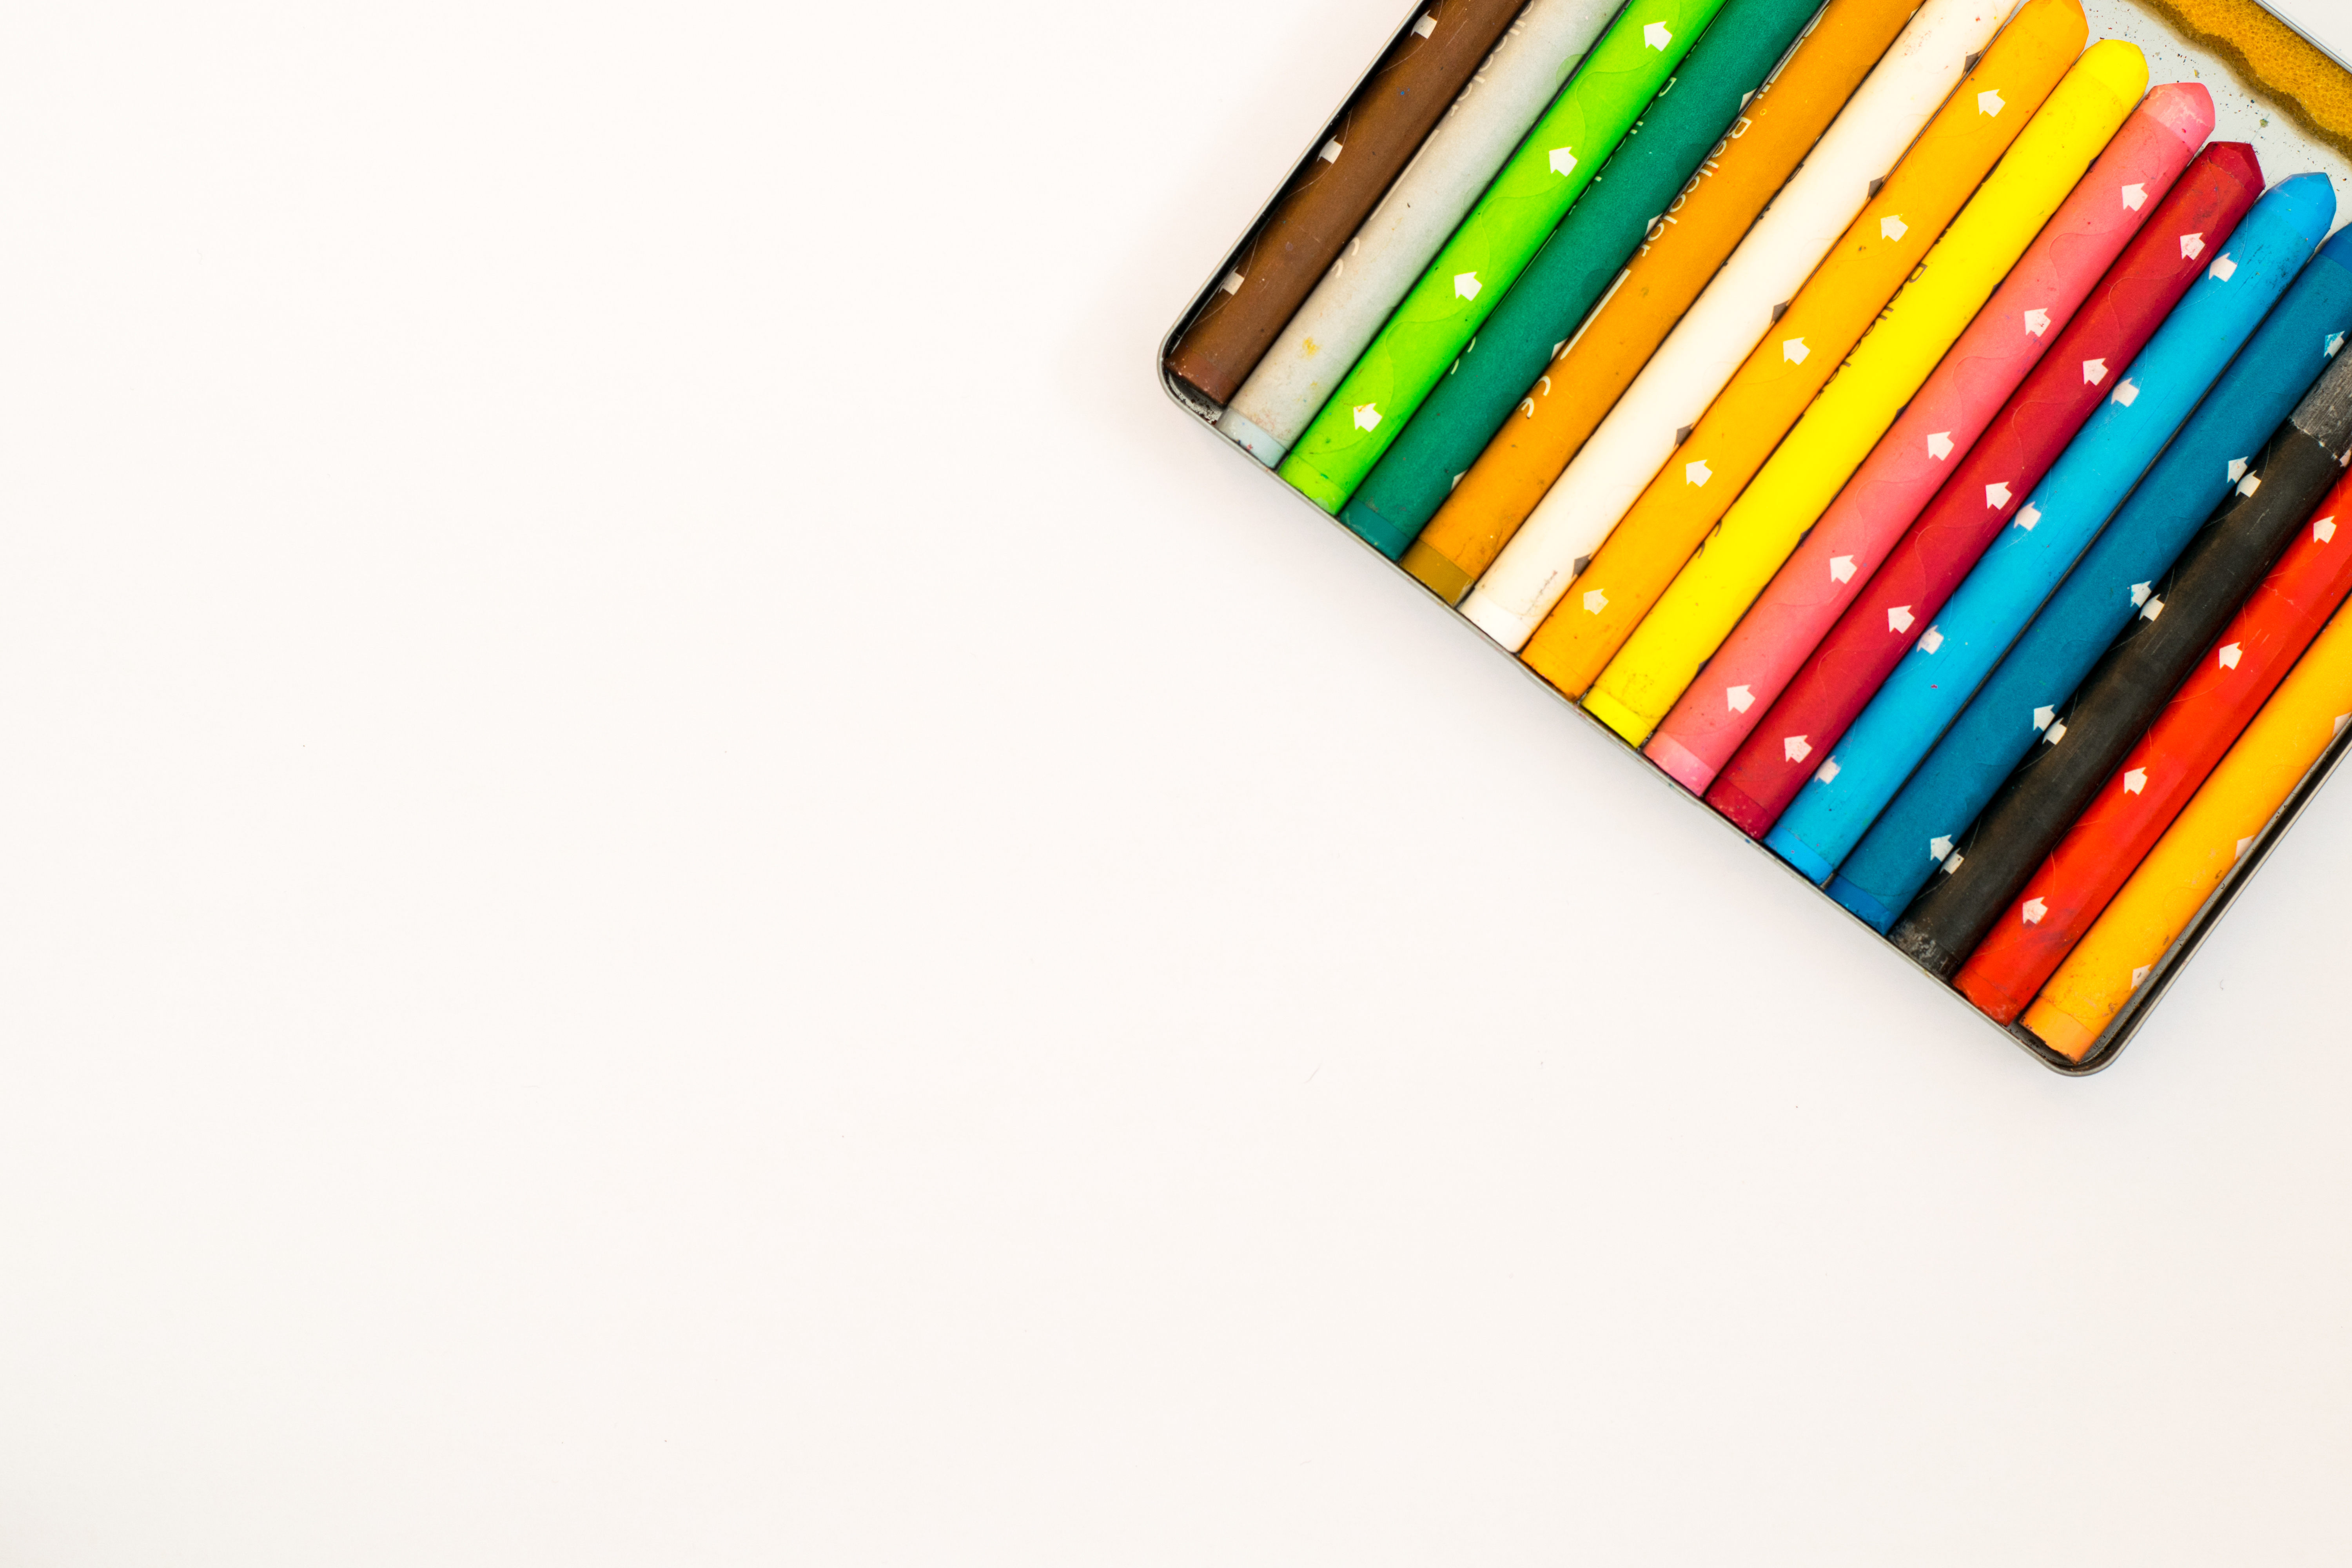 free stock photos of color pencil · pexels, Powerpoint templates